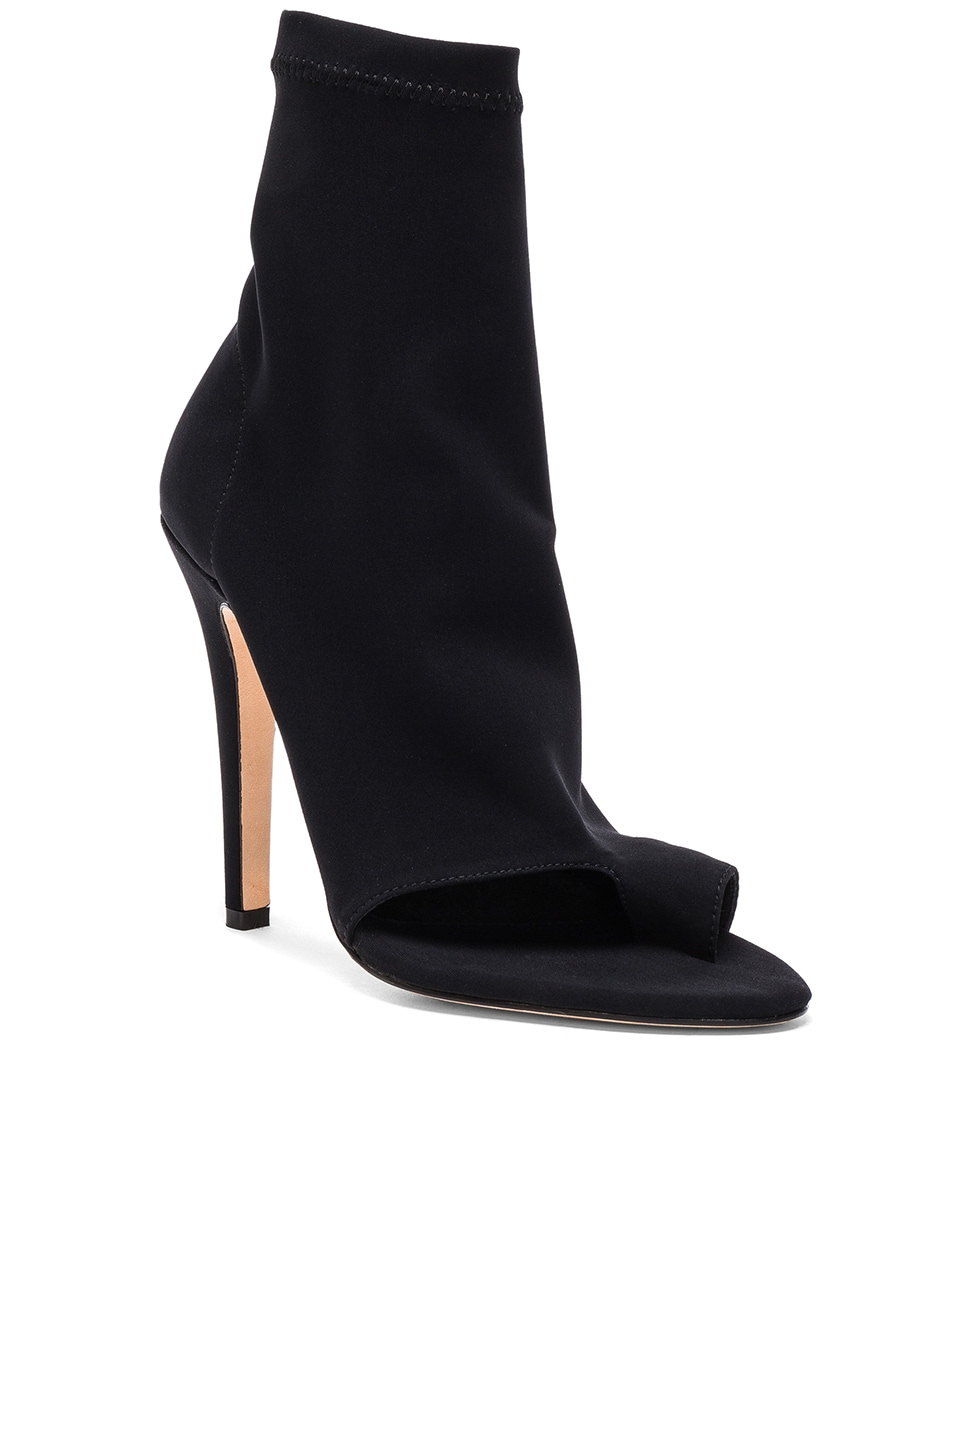 Image 2 of Dion Lee Glove Ankle Booties in Black